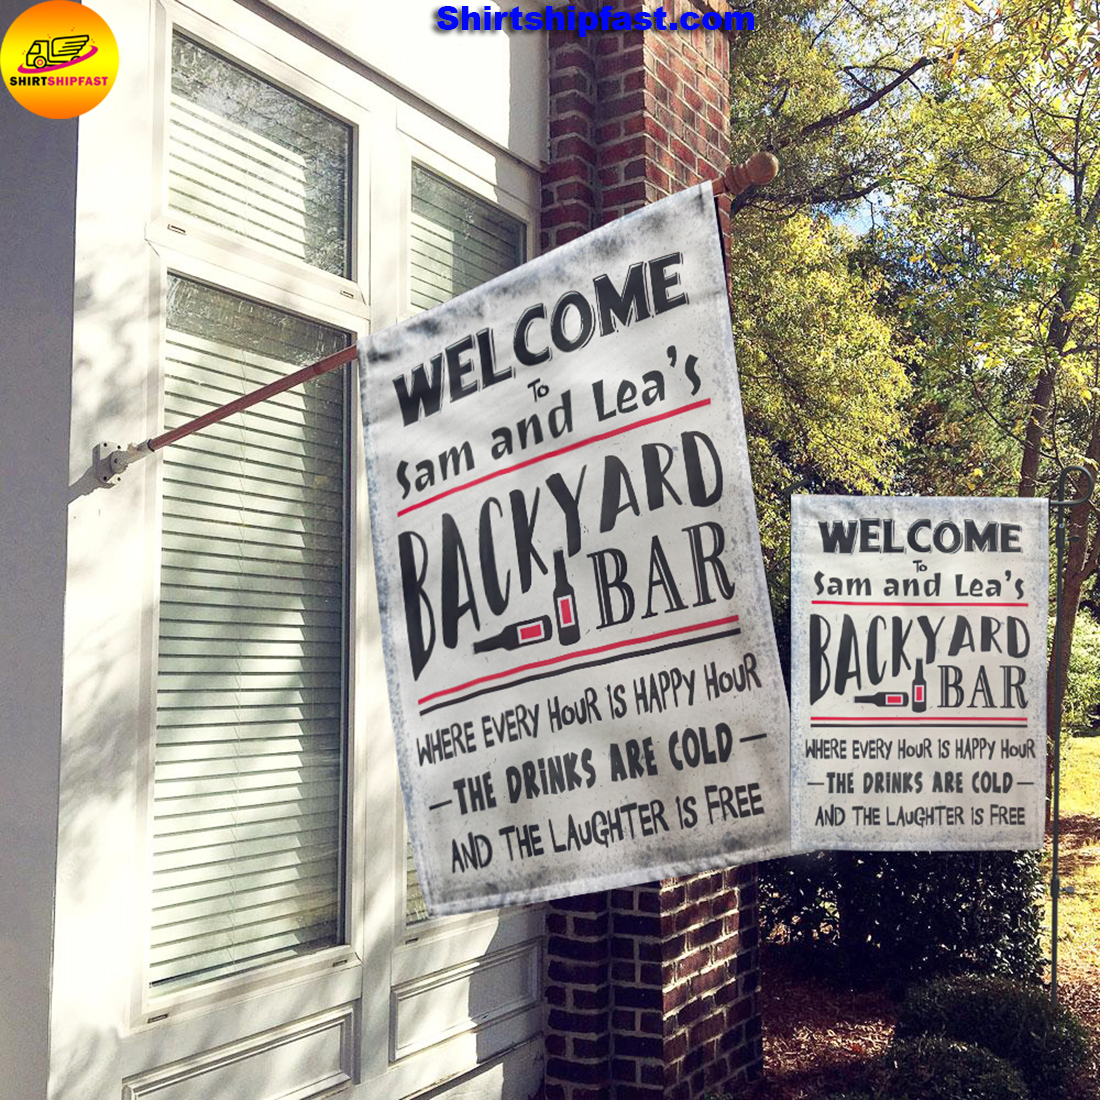 Personalized Welcome to backyard bar flag